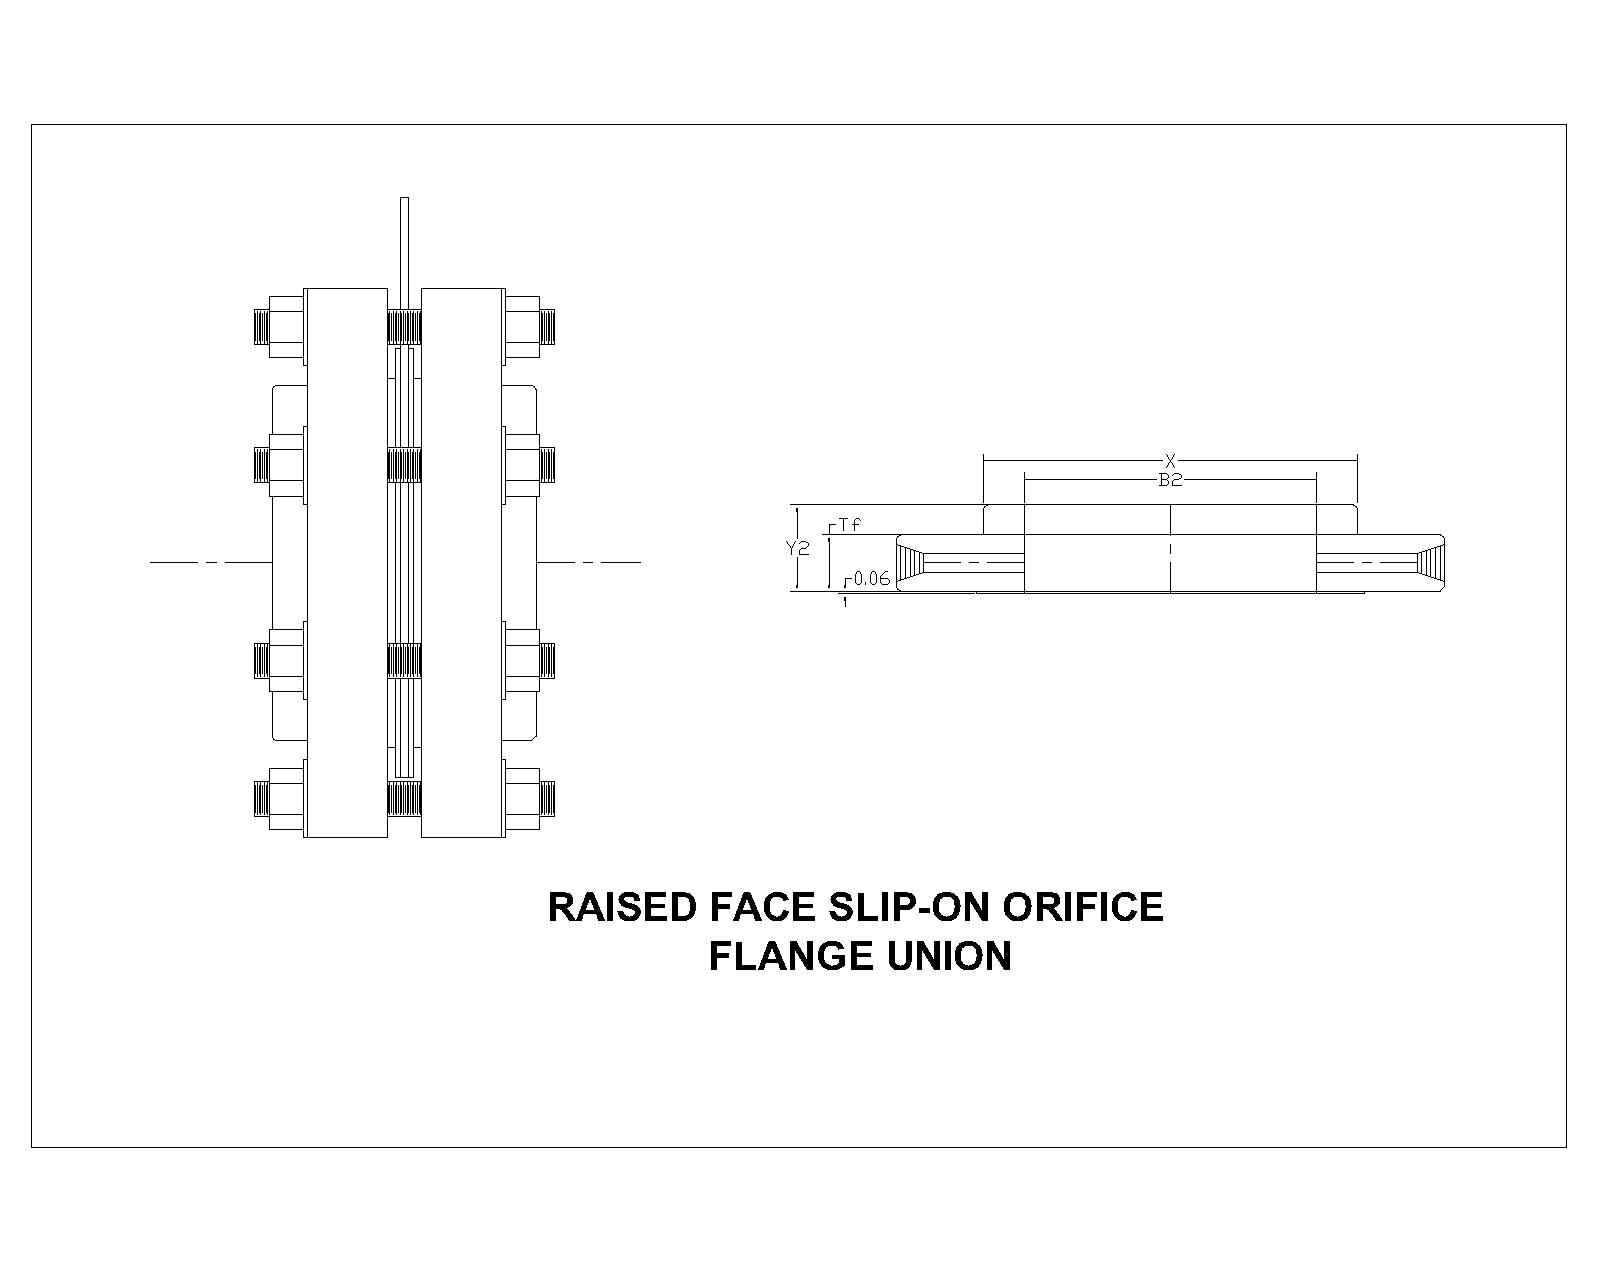 hight resolution of class 300 raised face slip on orifice flanges